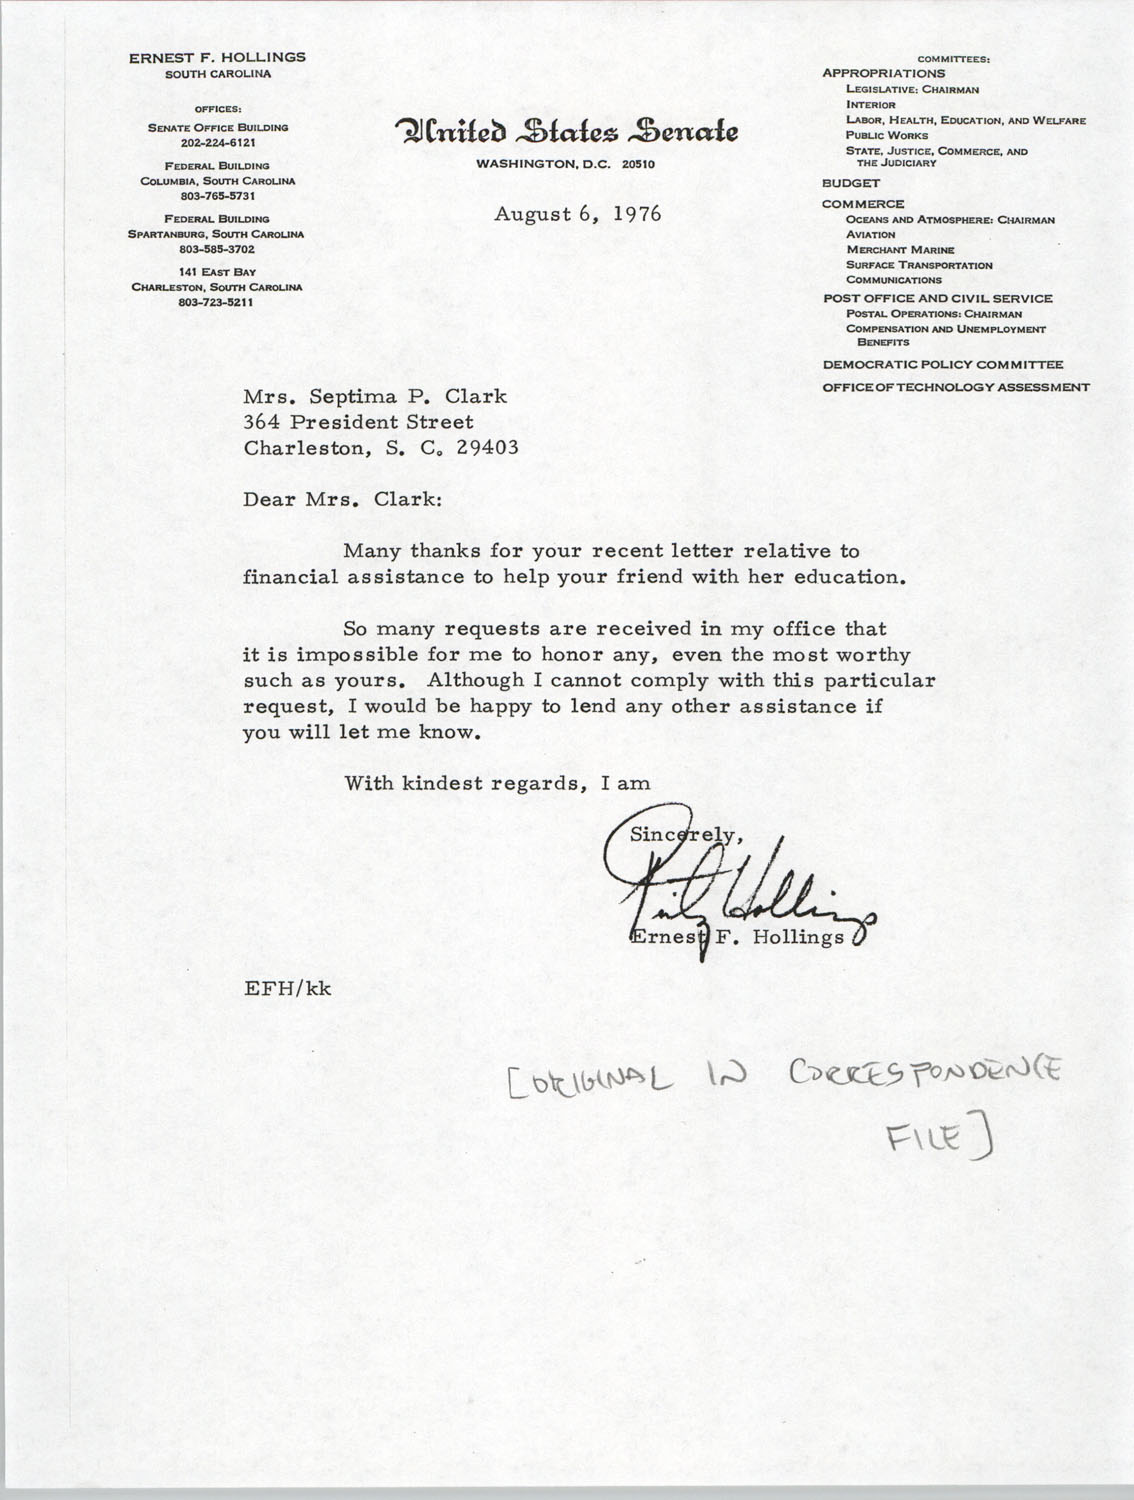 Letter from Ernest F. Hollings to Septima P. Clark, August 6, 1976